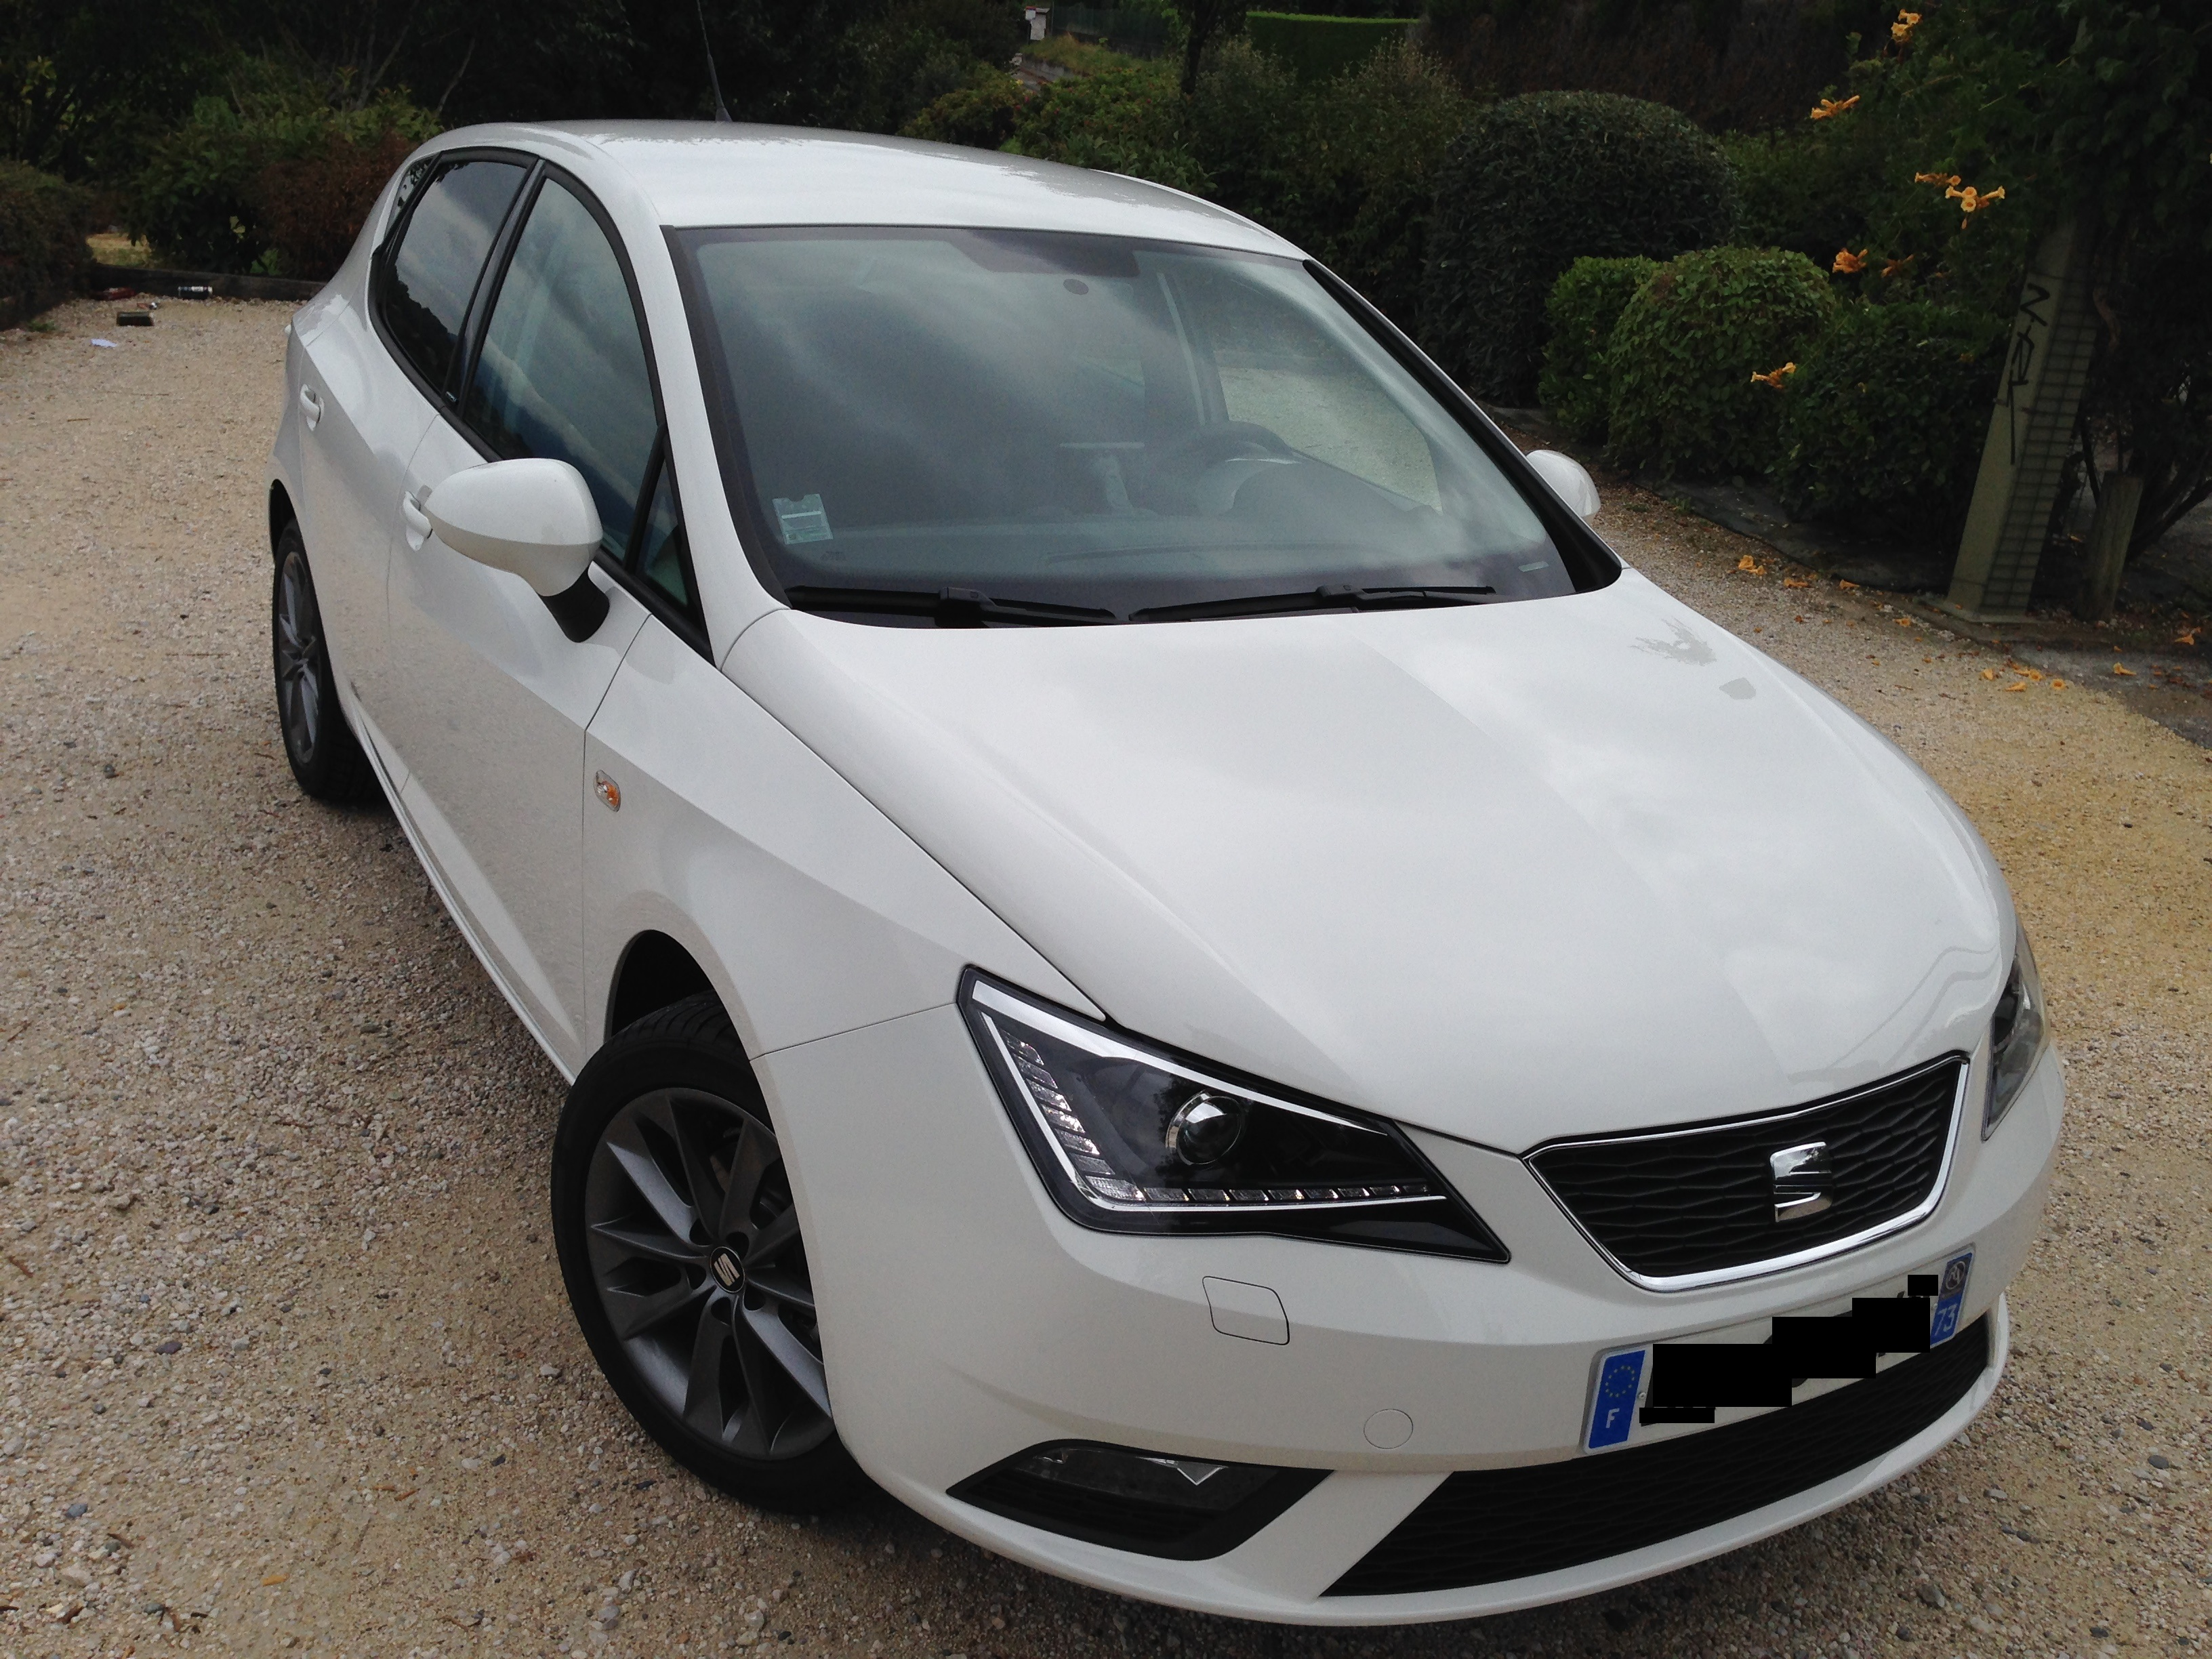 seat ibiza itech plus 1 2tsi blanche pr sentation ibiza seat forum marques. Black Bedroom Furniture Sets. Home Design Ideas